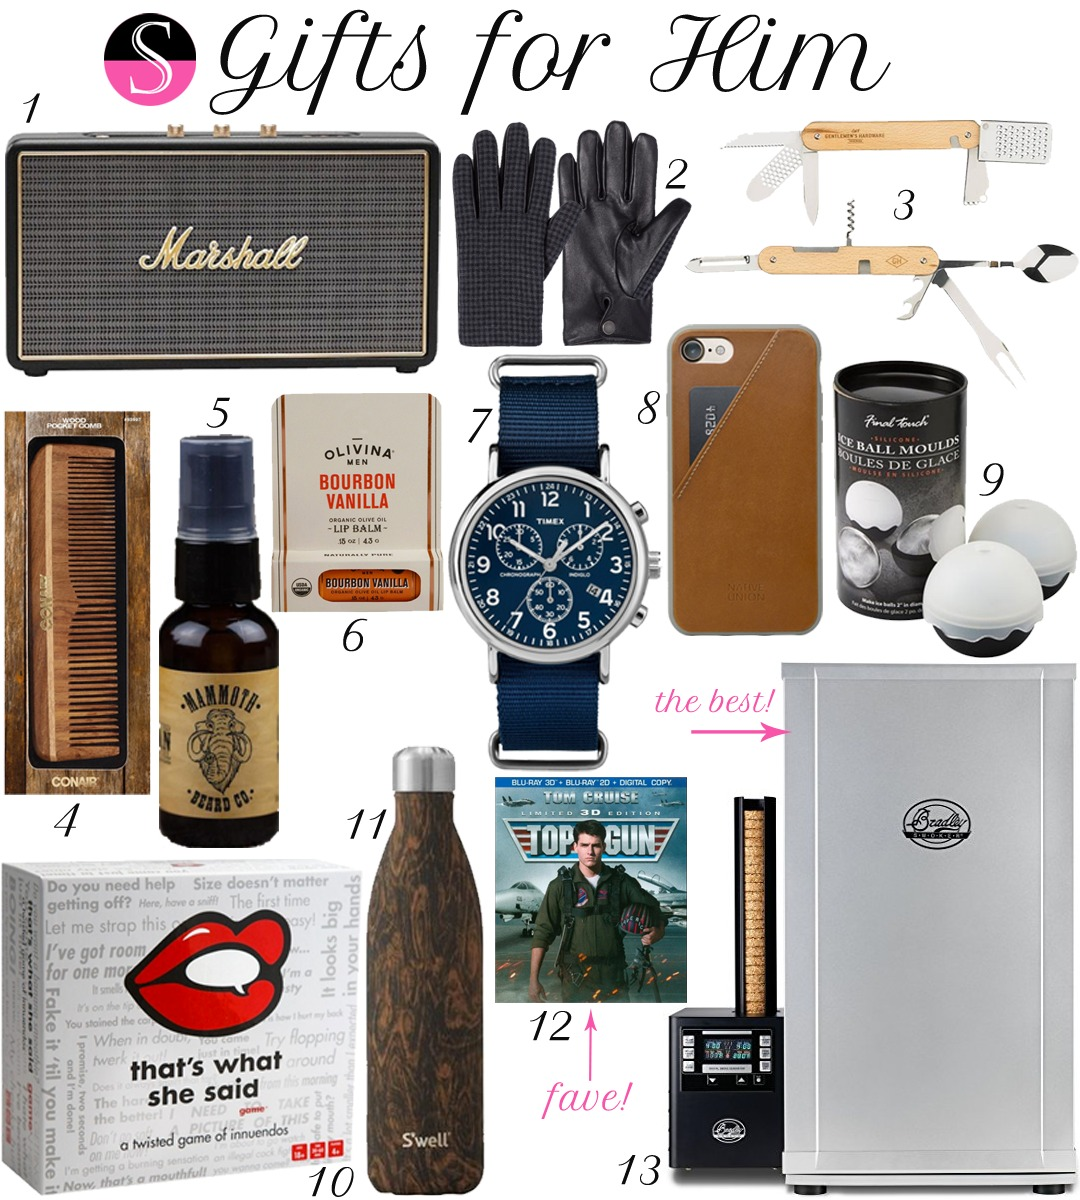 Gifts for Him | Gift Guide | Gifts for Men | Gift Guide | Stocking Stuffers | Gifts for Husband Brother Dad Father Boyfriend | Best Gifts for Men